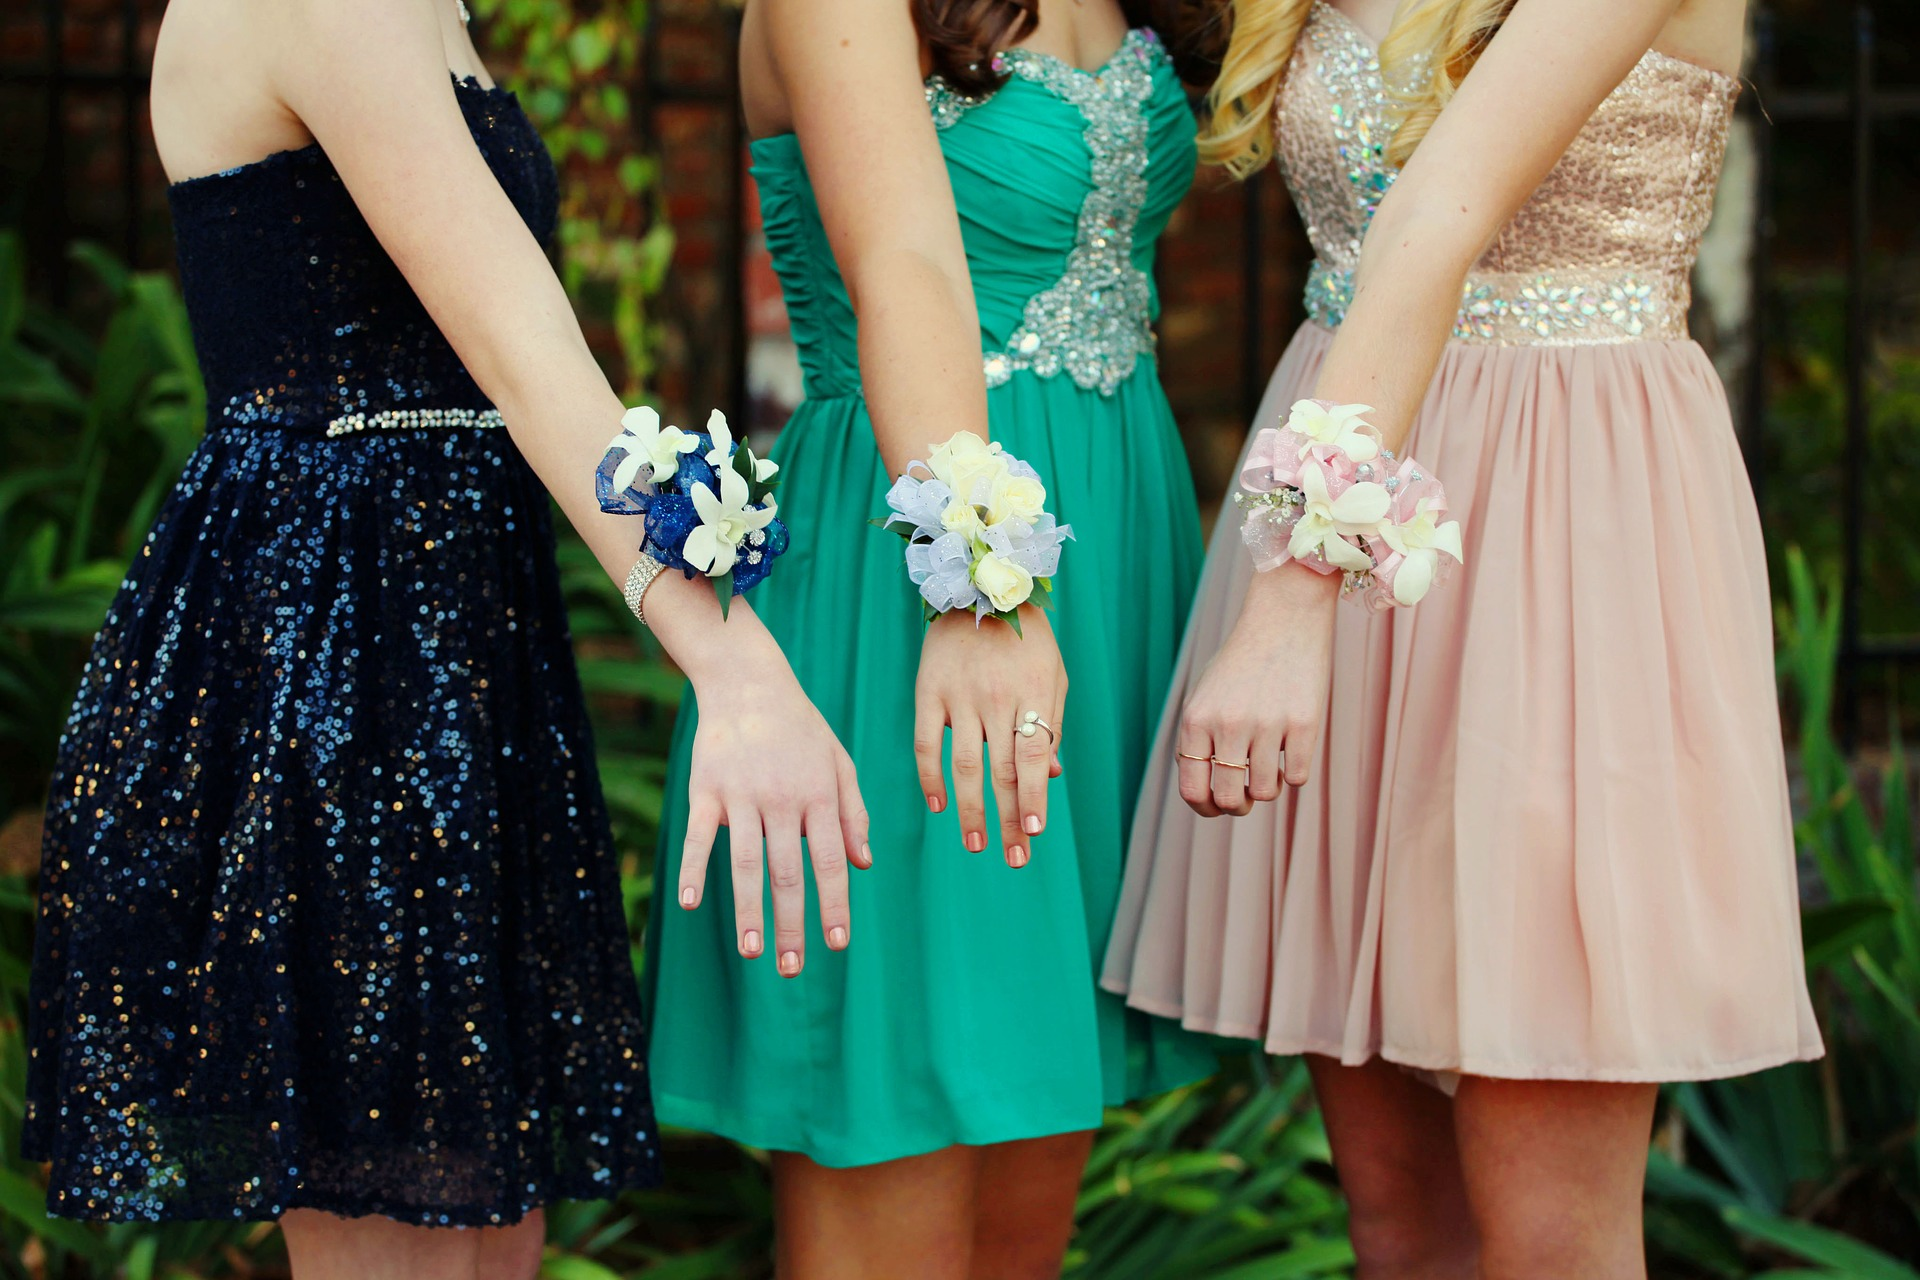 Post-Prom Party Liability Waivers